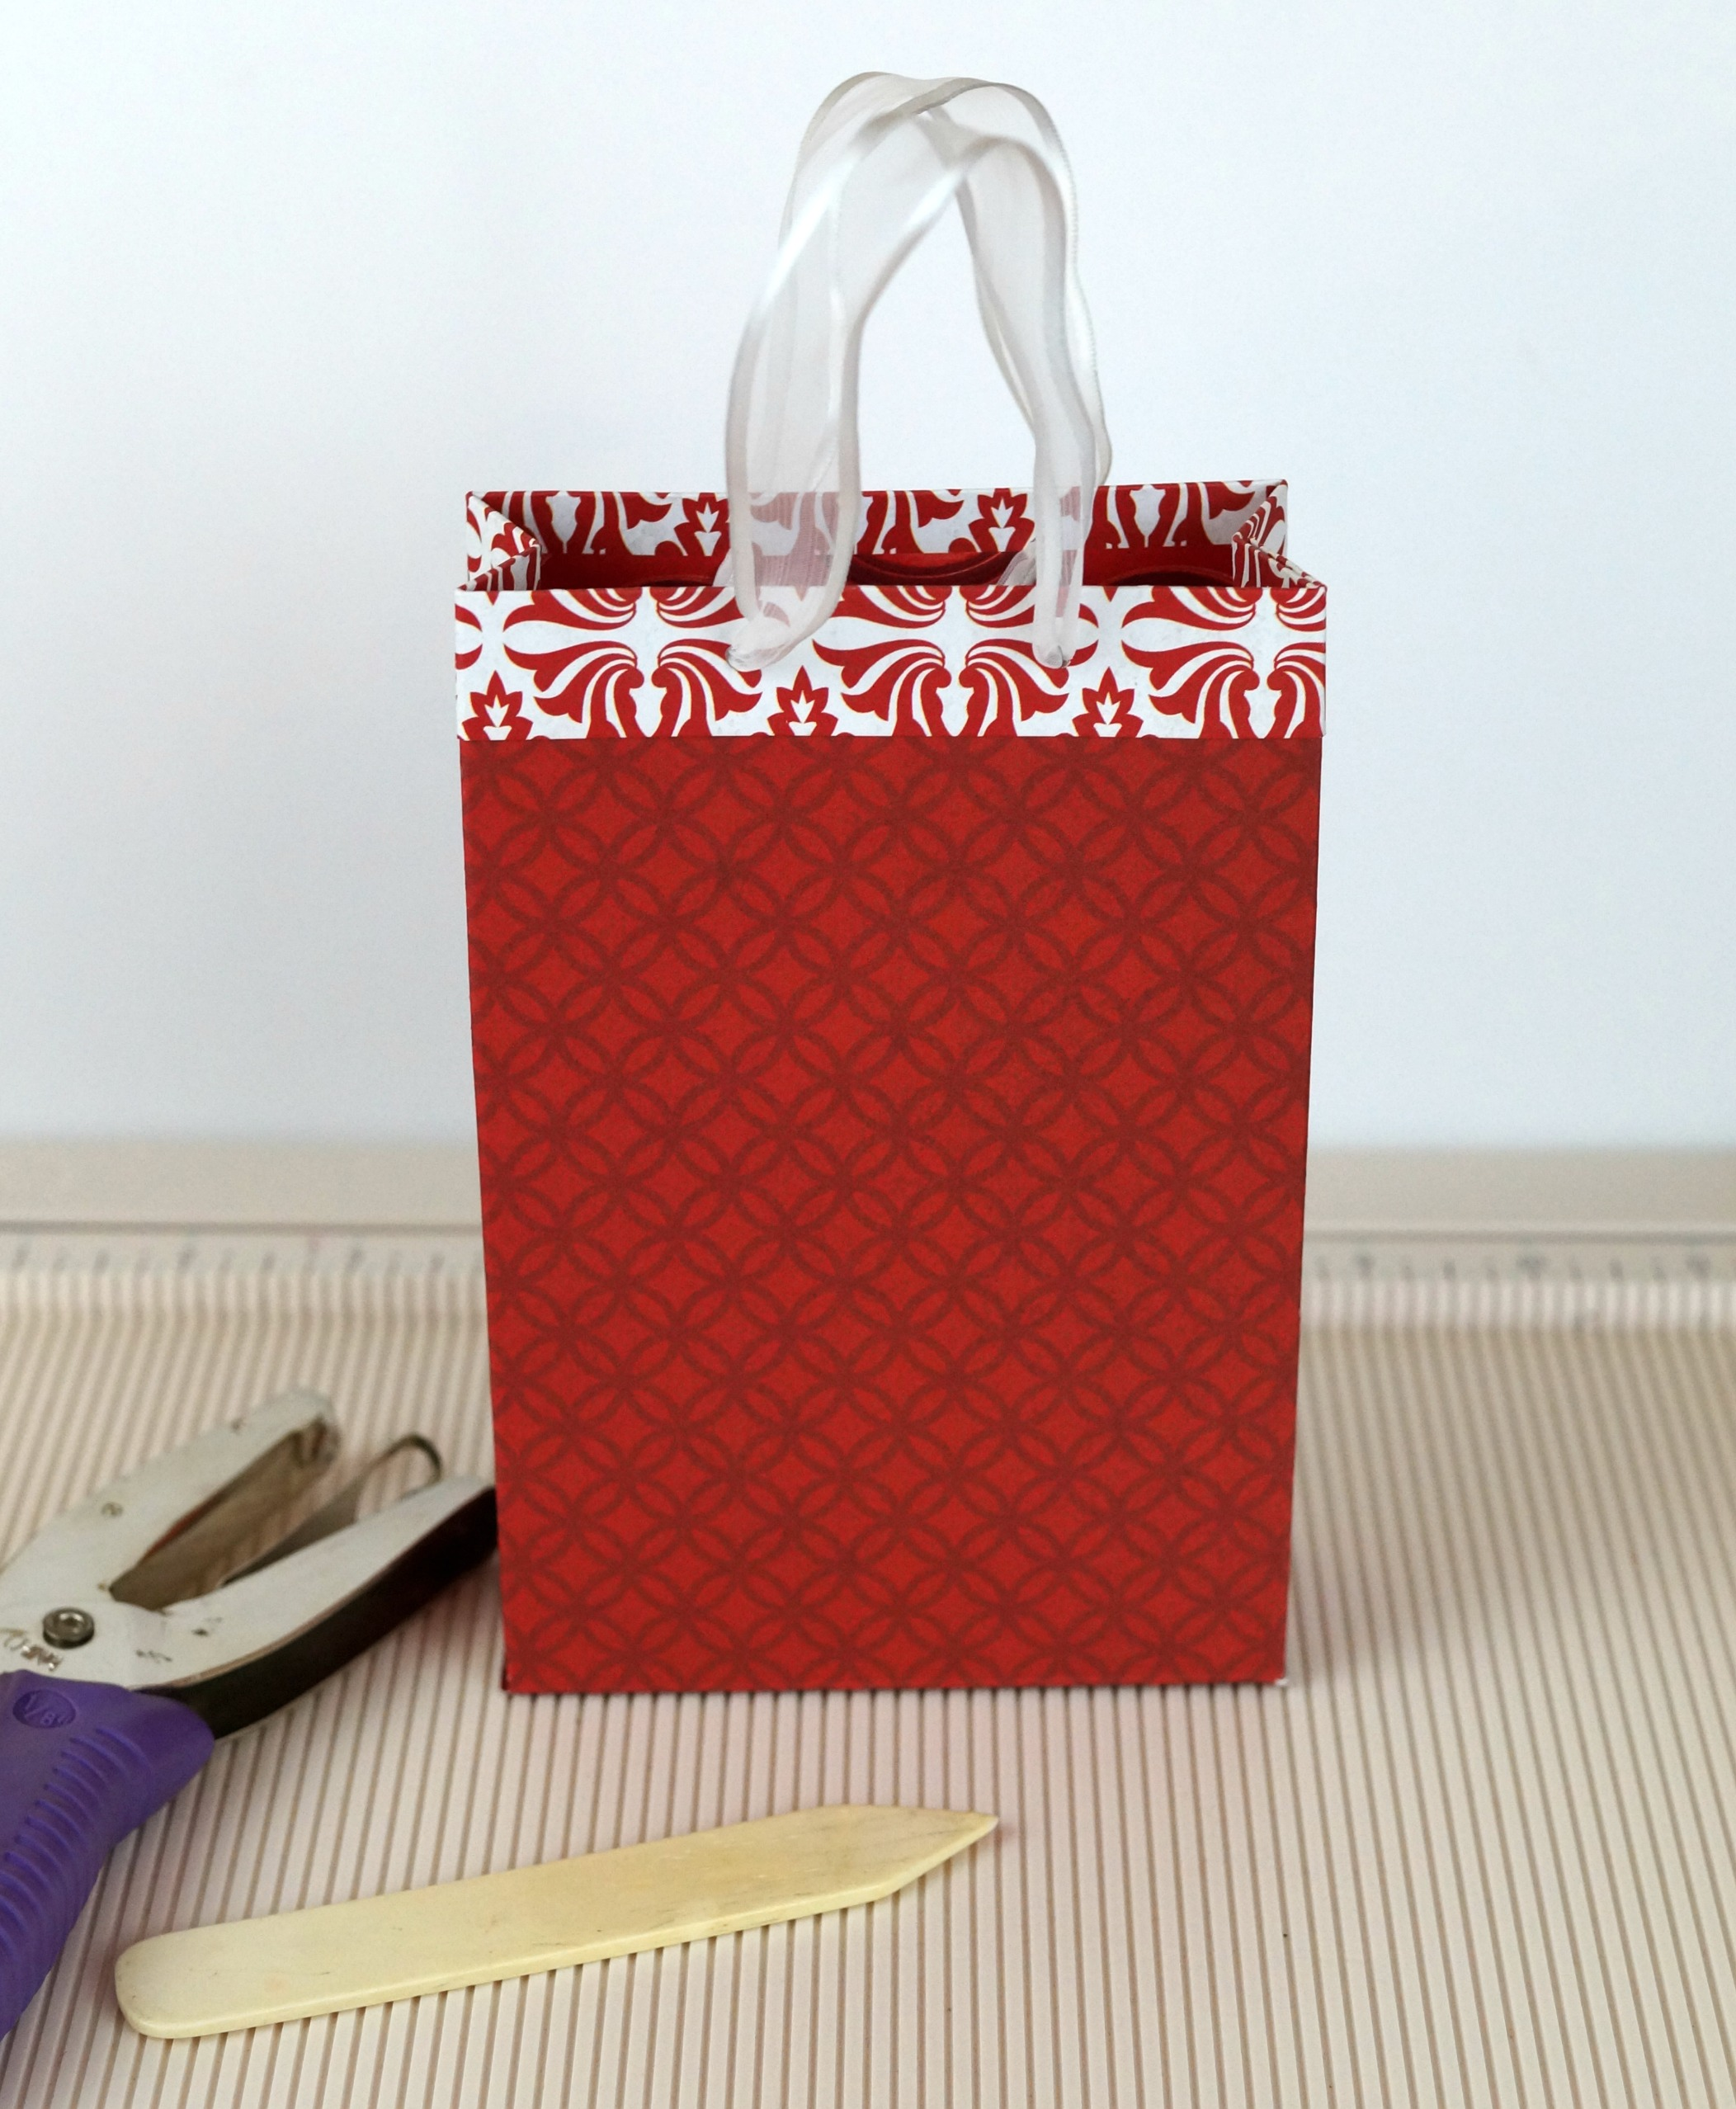 How to make a gift bag from 12x12 paper